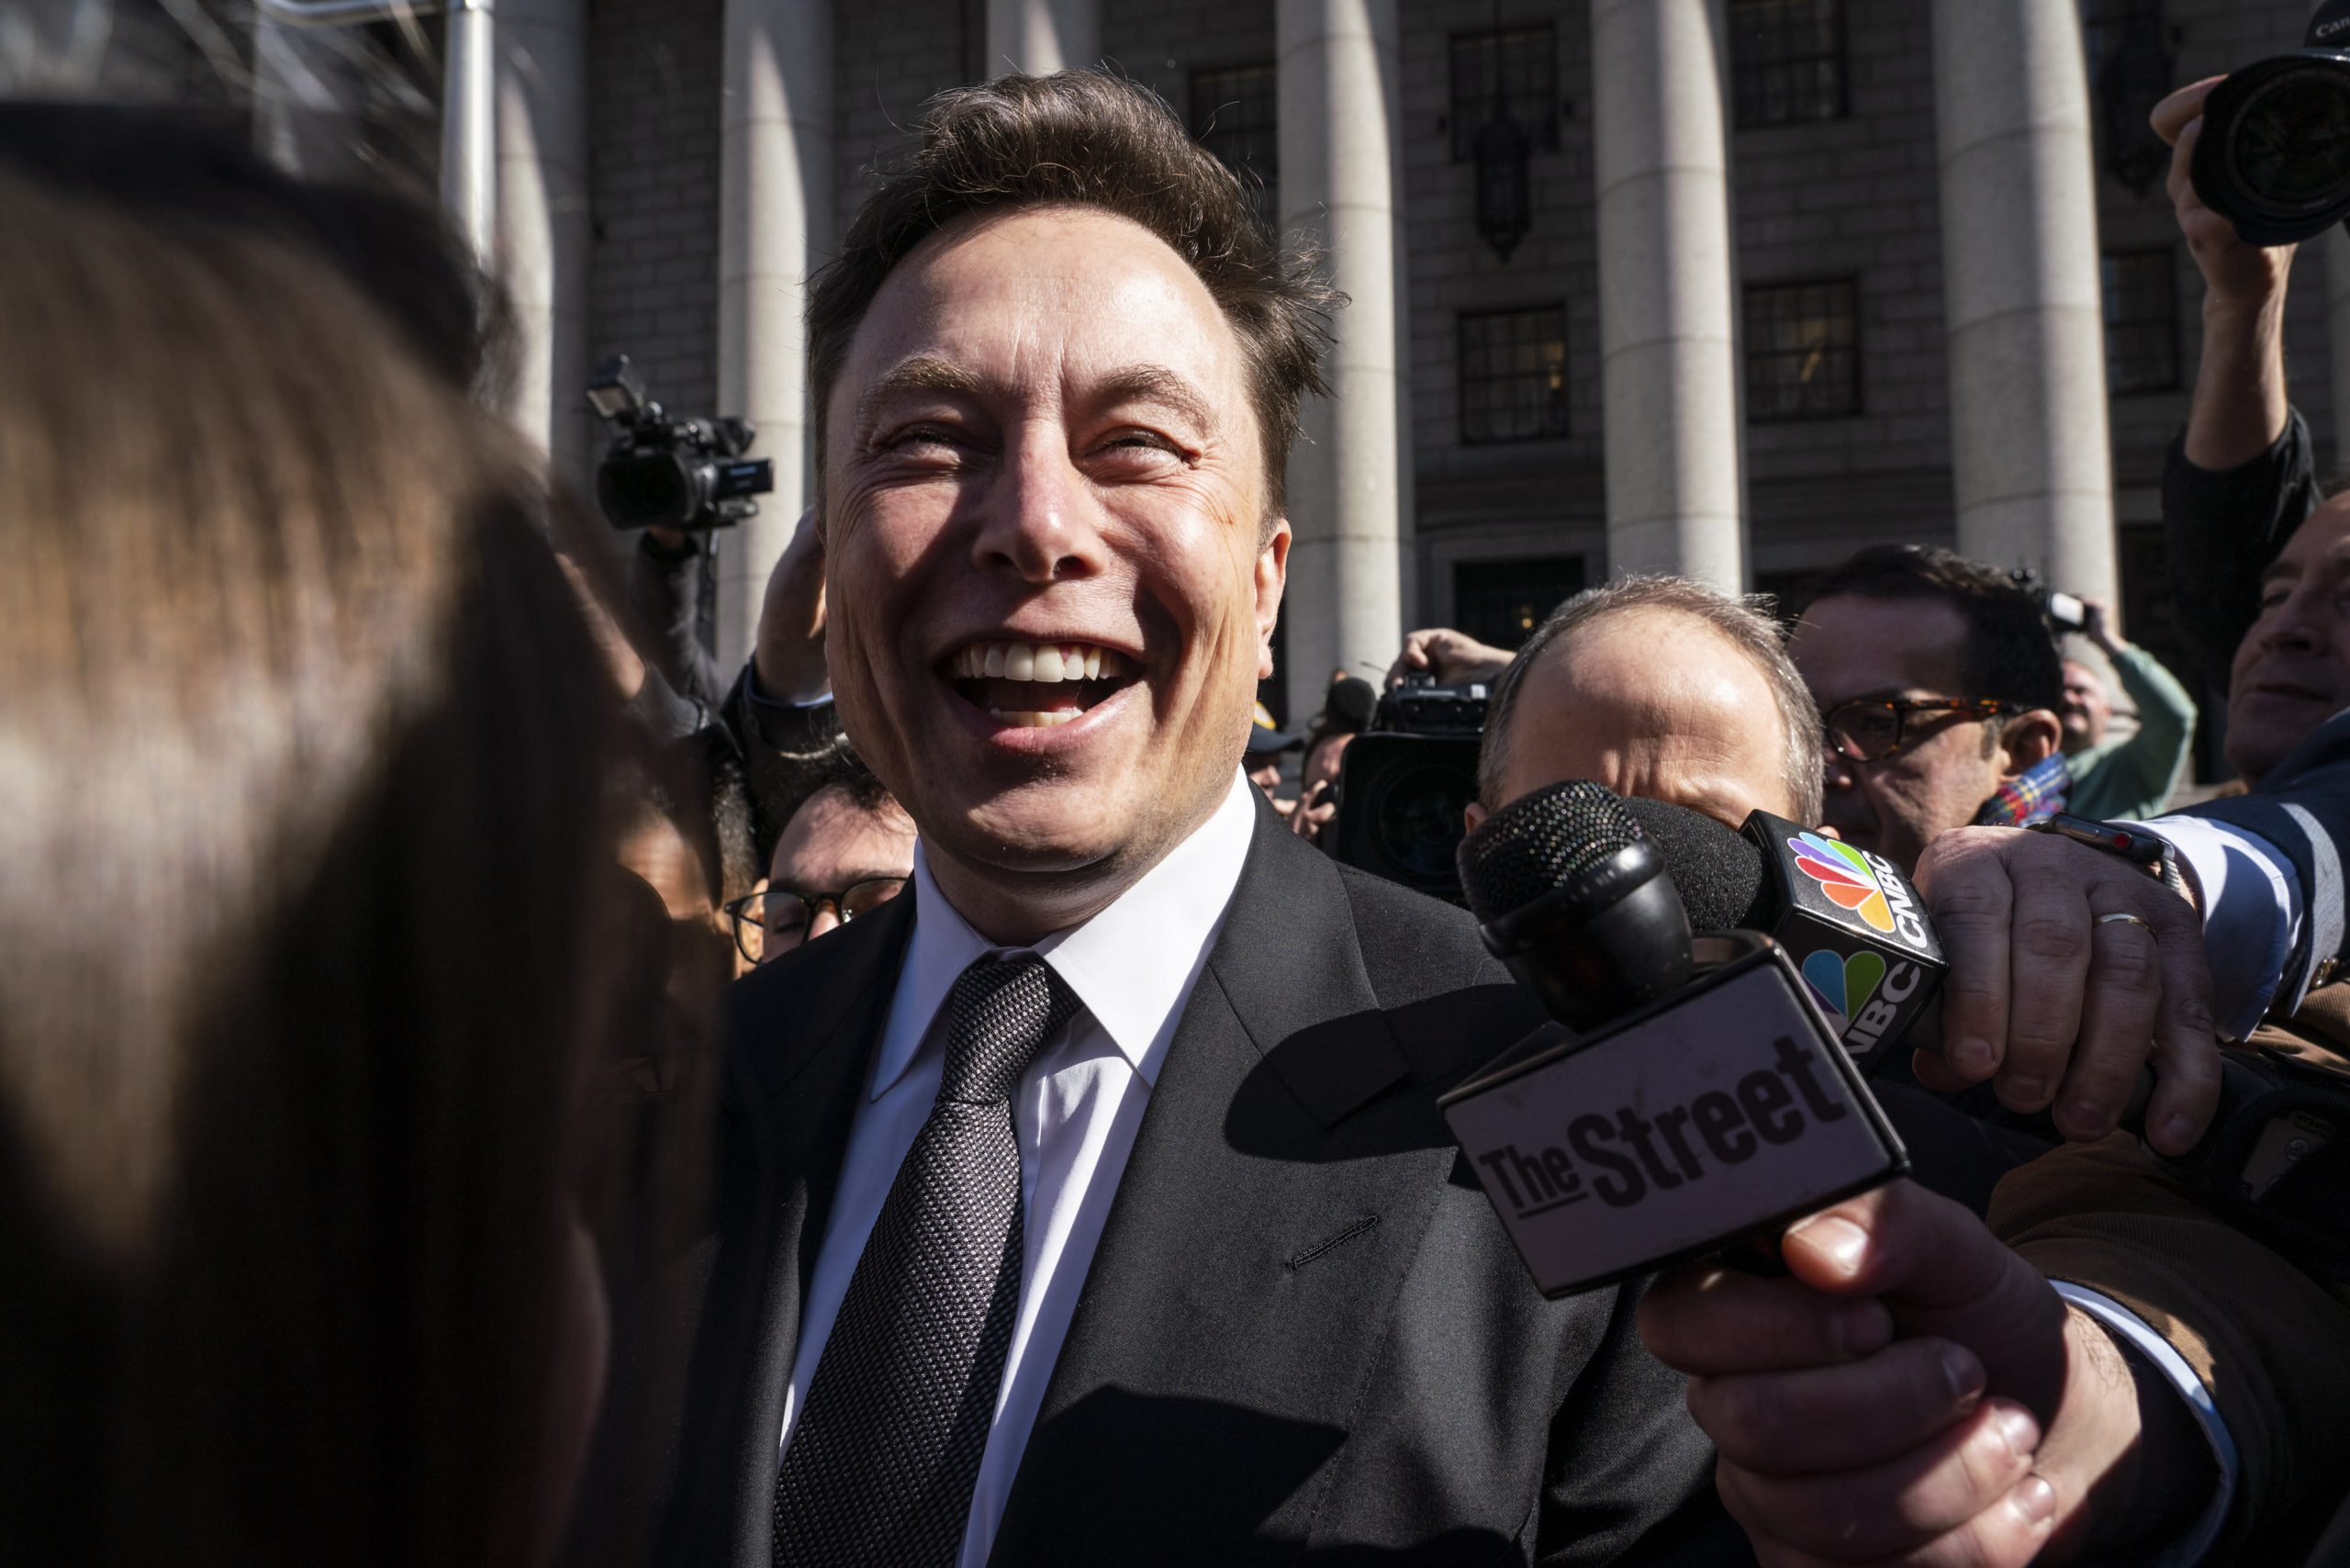 Stocks making the biggest moves midday: Tesla, Capital One, Northern Trust, IBM & more